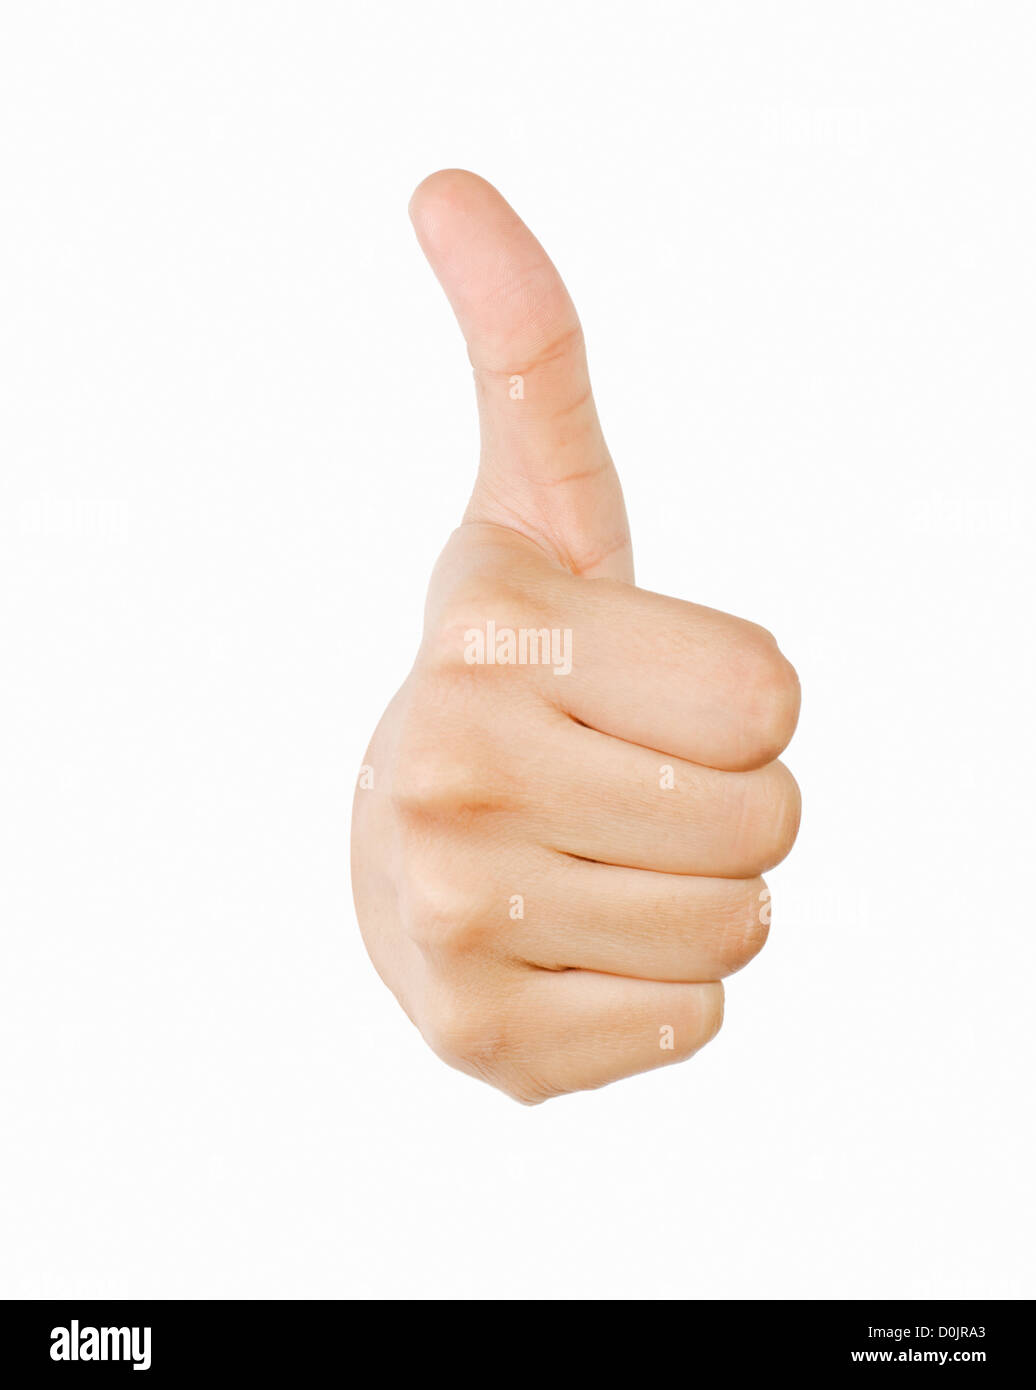 Close-up of a person's hand making the thumbs up sign - Stock Image